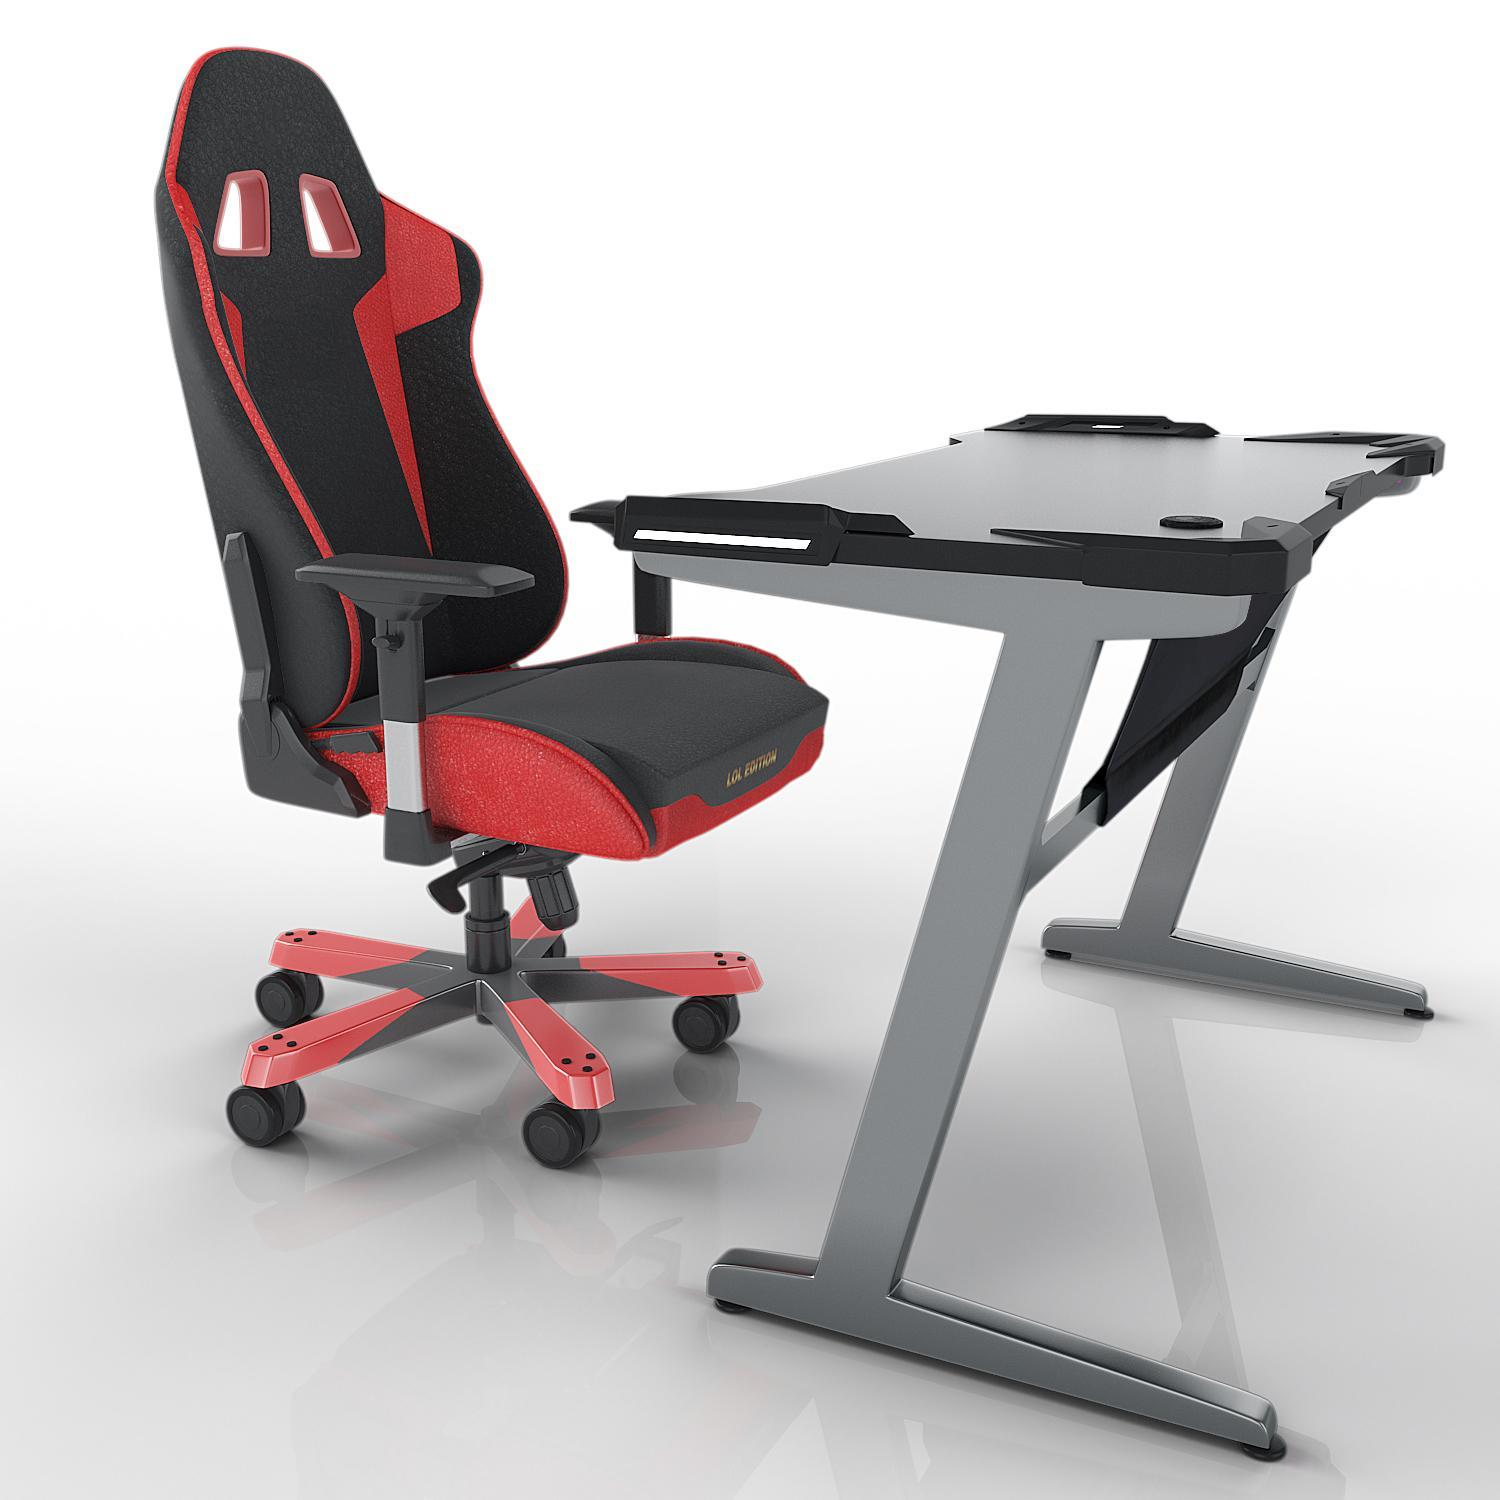 z shaped high chair and table rental quality abs atlantic gaming desk ergonomic comfortable departments